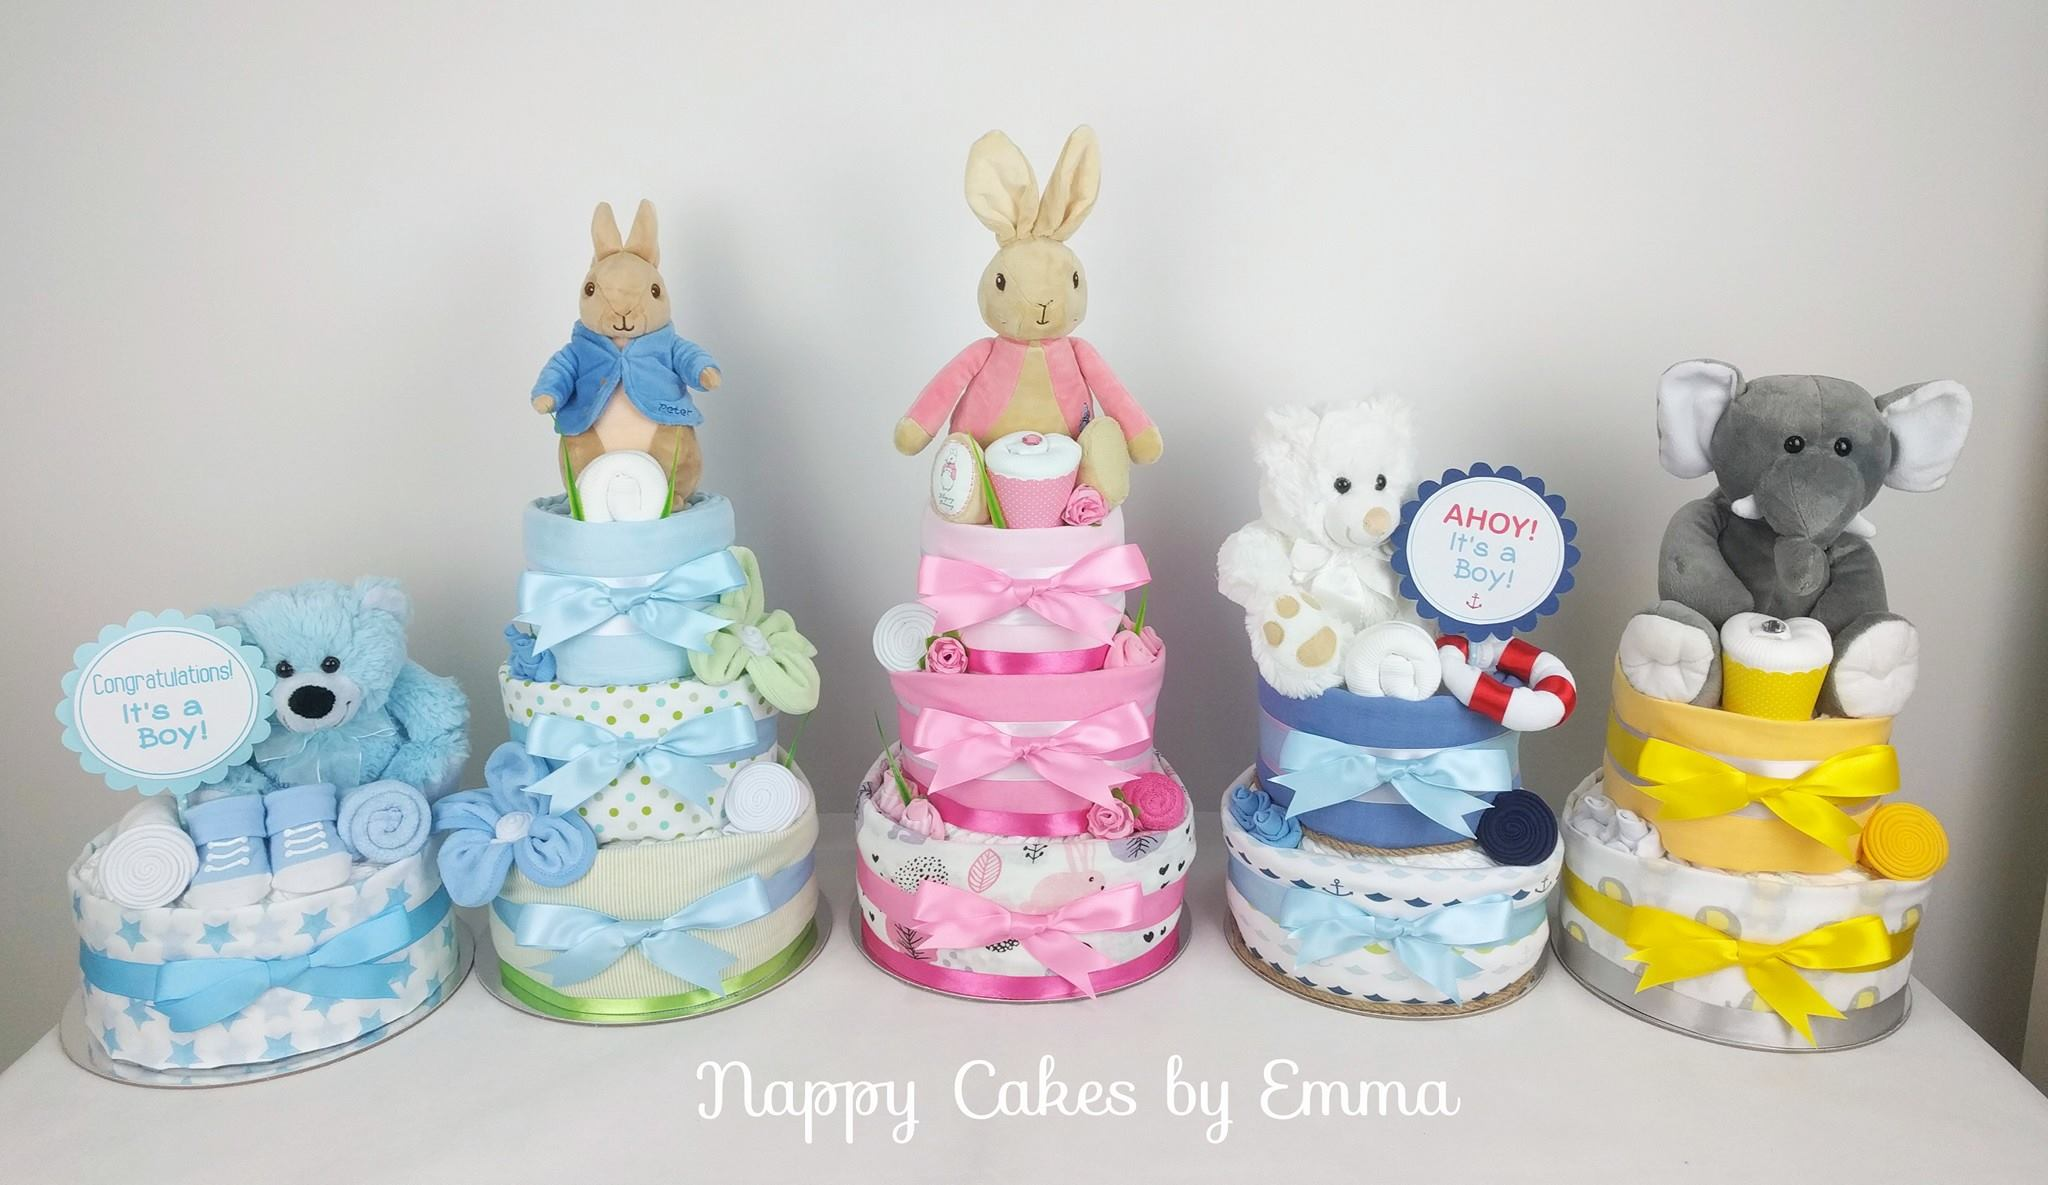 Nappy Cakes By Emma